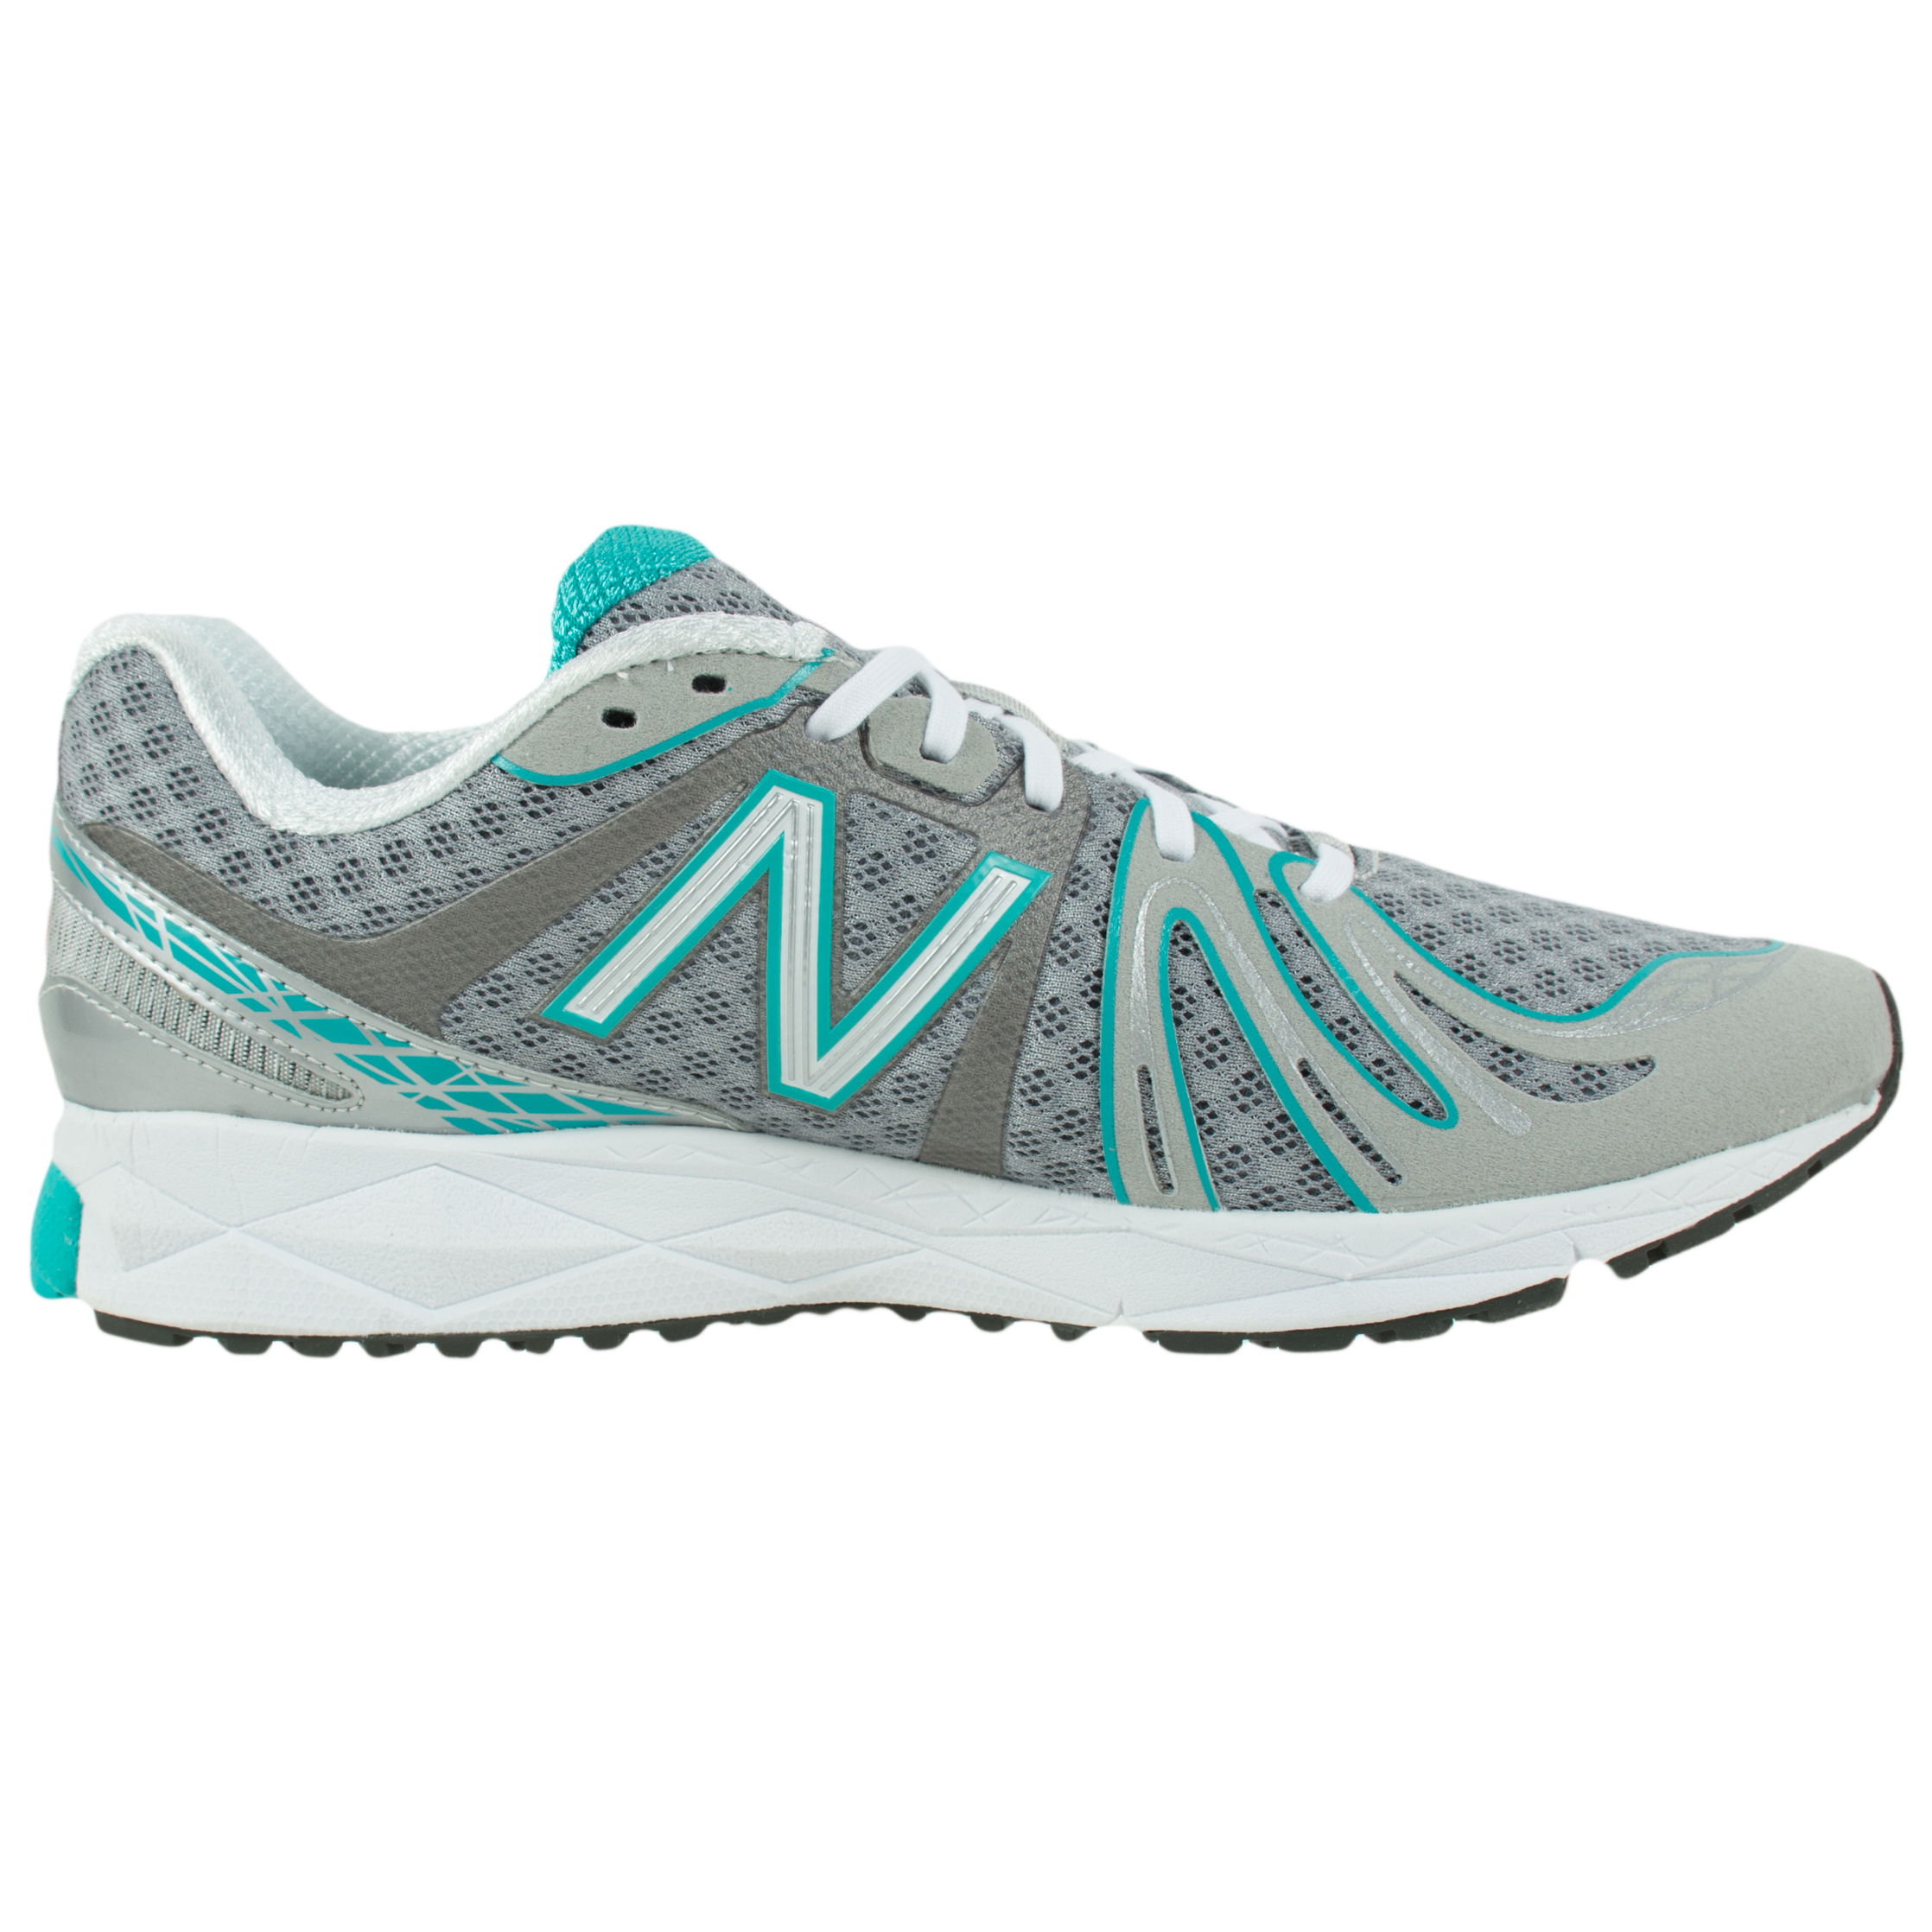 new balance women 39 s revlite 890 running sneakers silver teal w890sg2. Black Bedroom Furniture Sets. Home Design Ideas